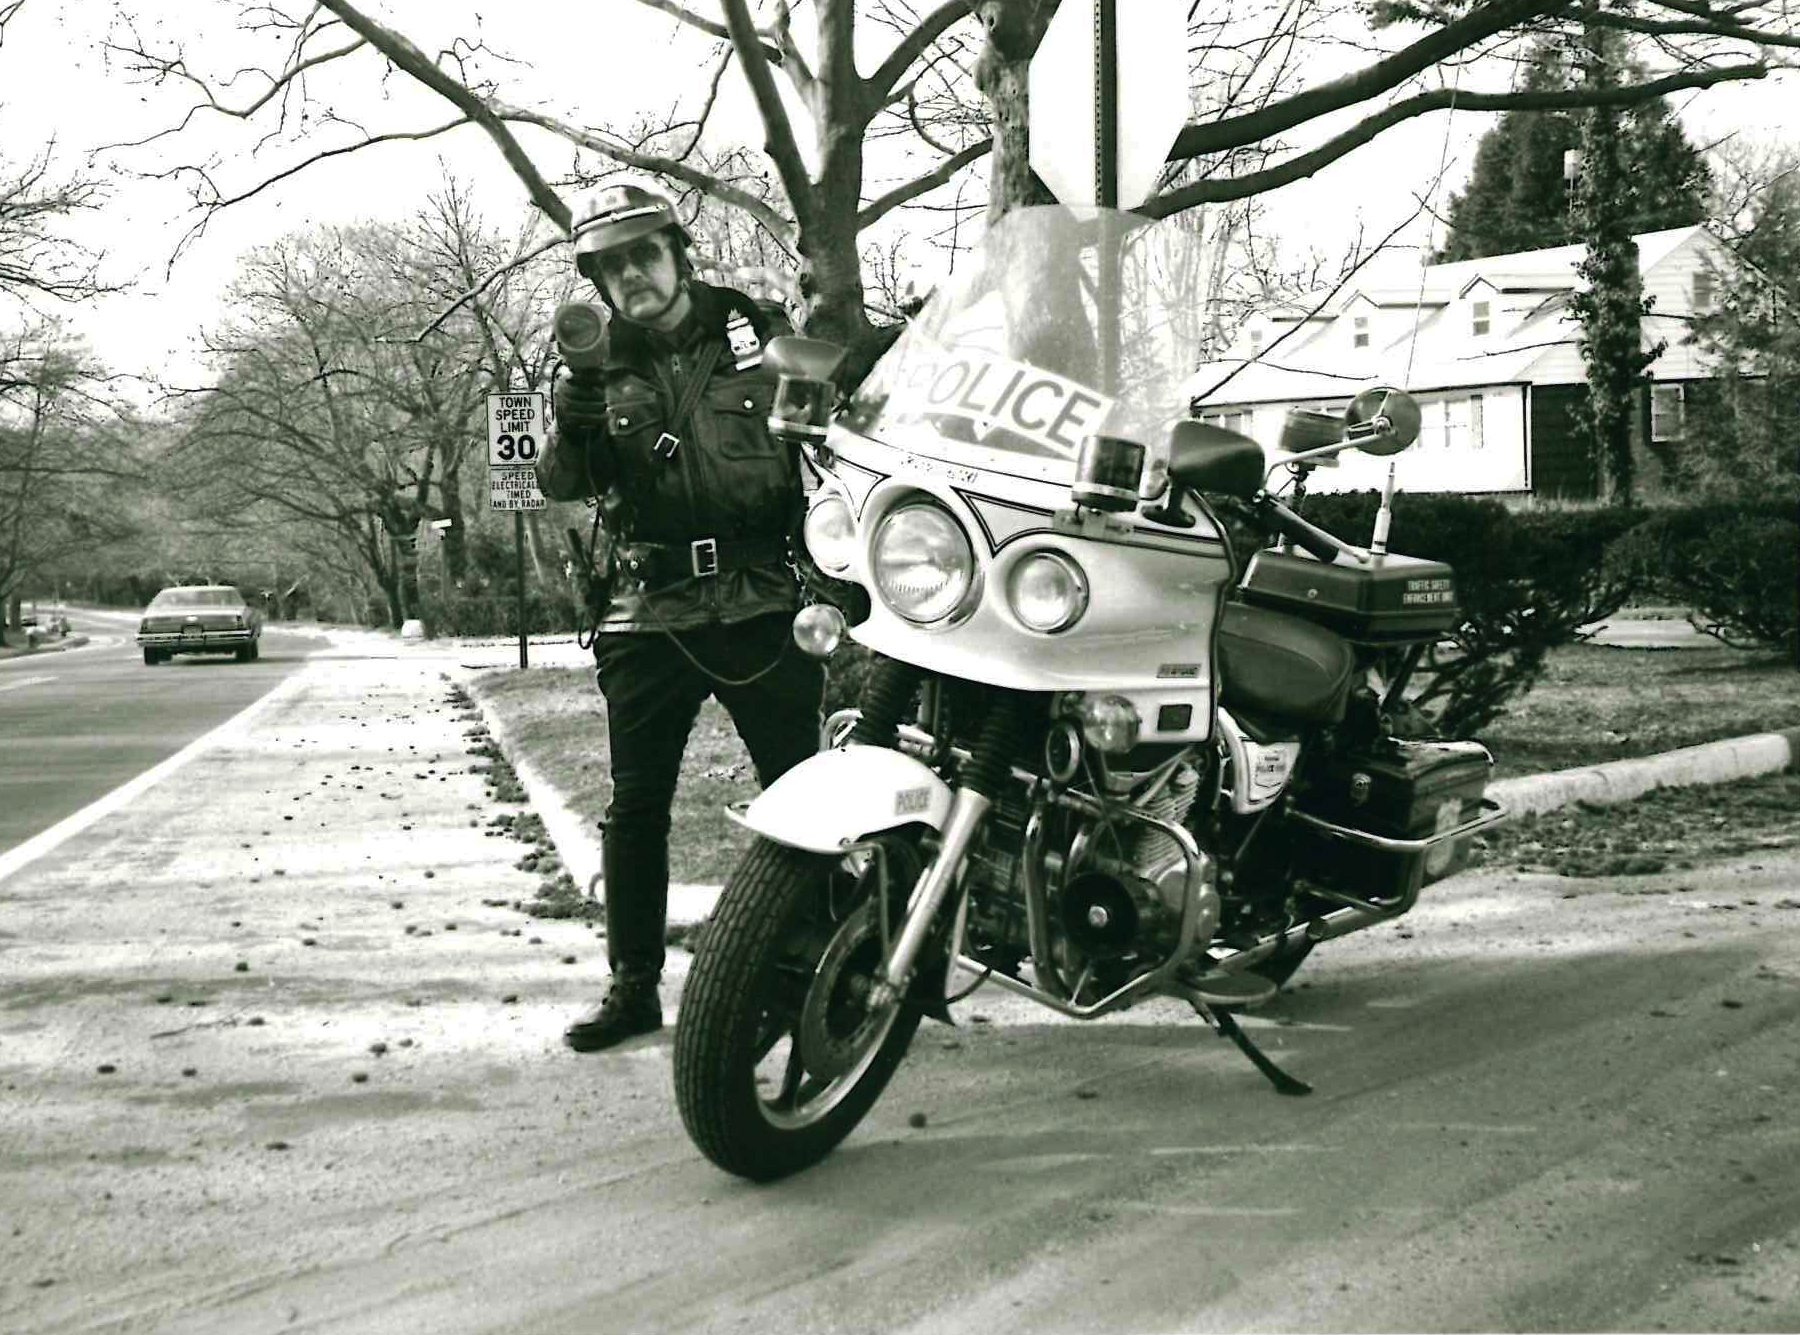 P.O. Lewis Wygand enforcing the speed limit on Beacon Hill Rd. Wygand faithfully served the PWPD from 1967-1990